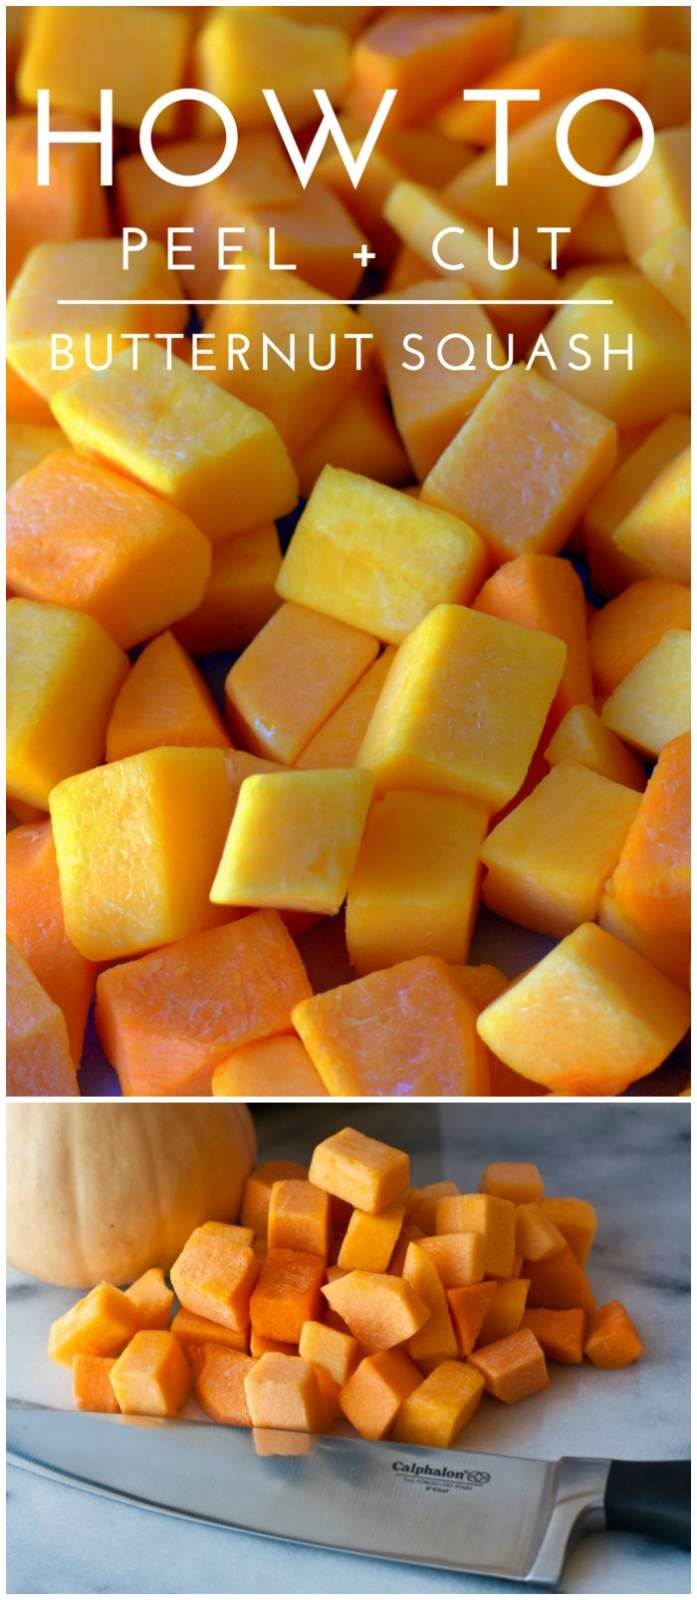 A collage of cut butternut squash with text overlay for Pinterest